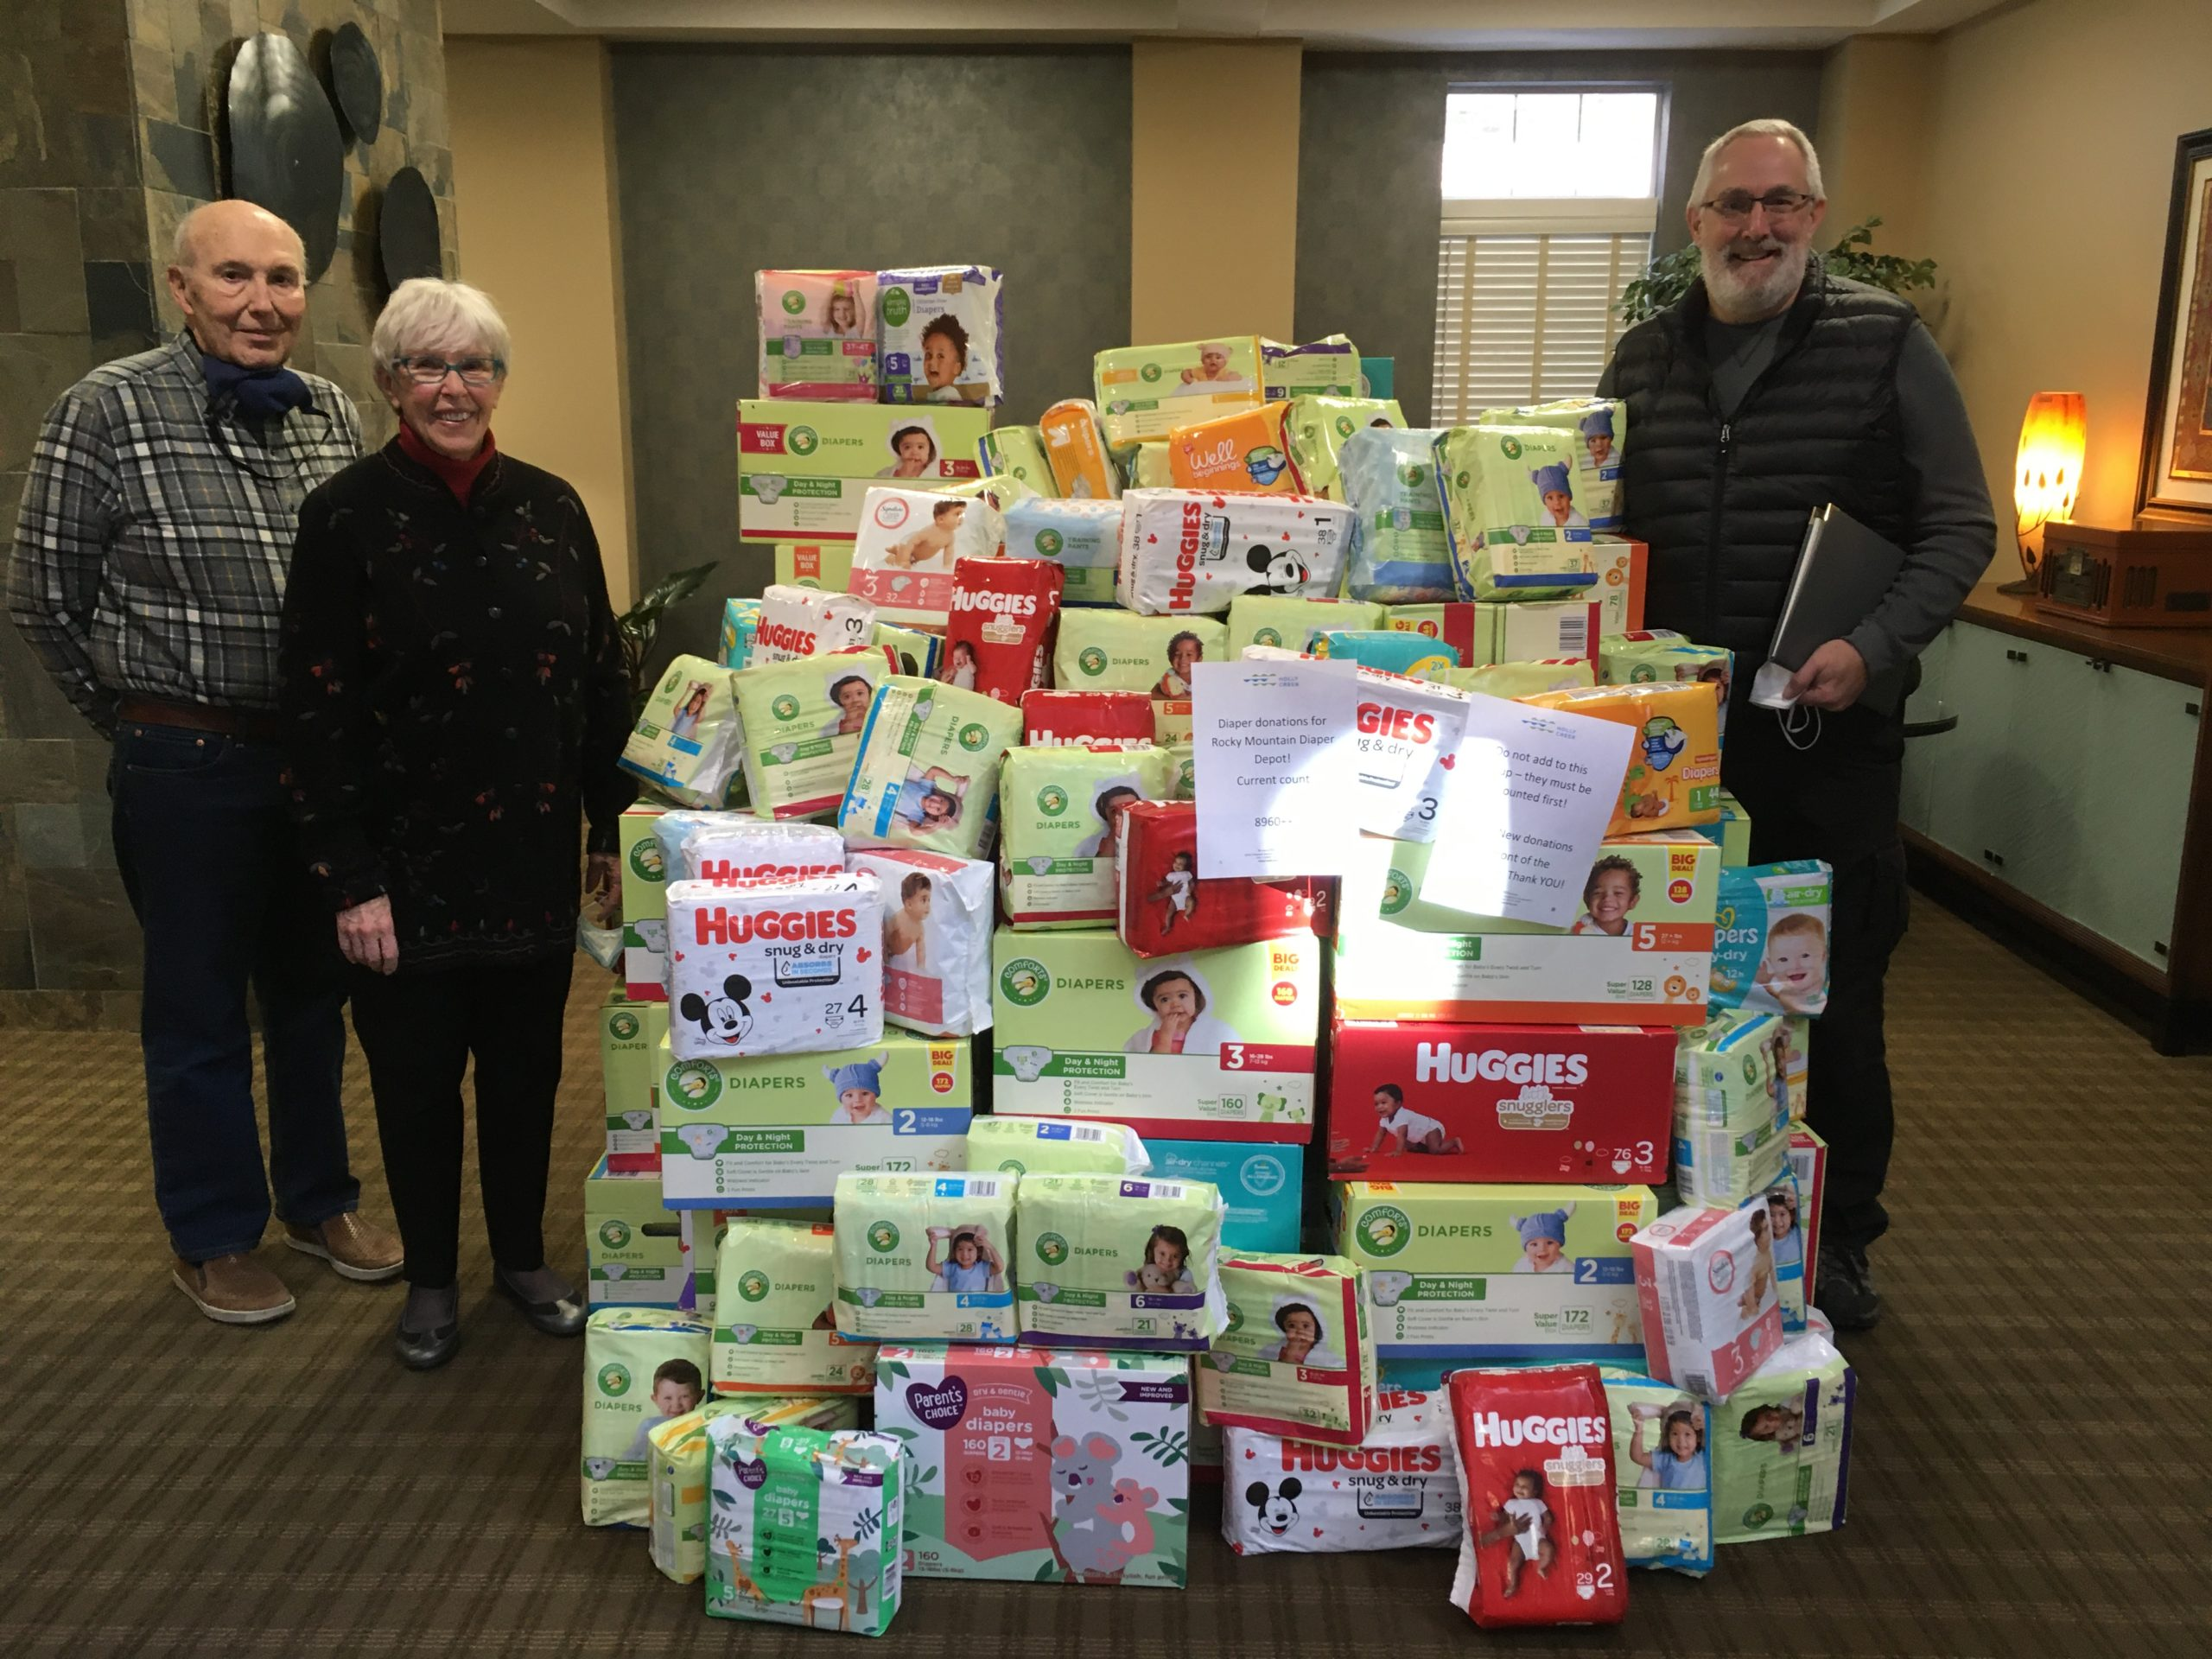 Holly Creek Diaper Donation Drive